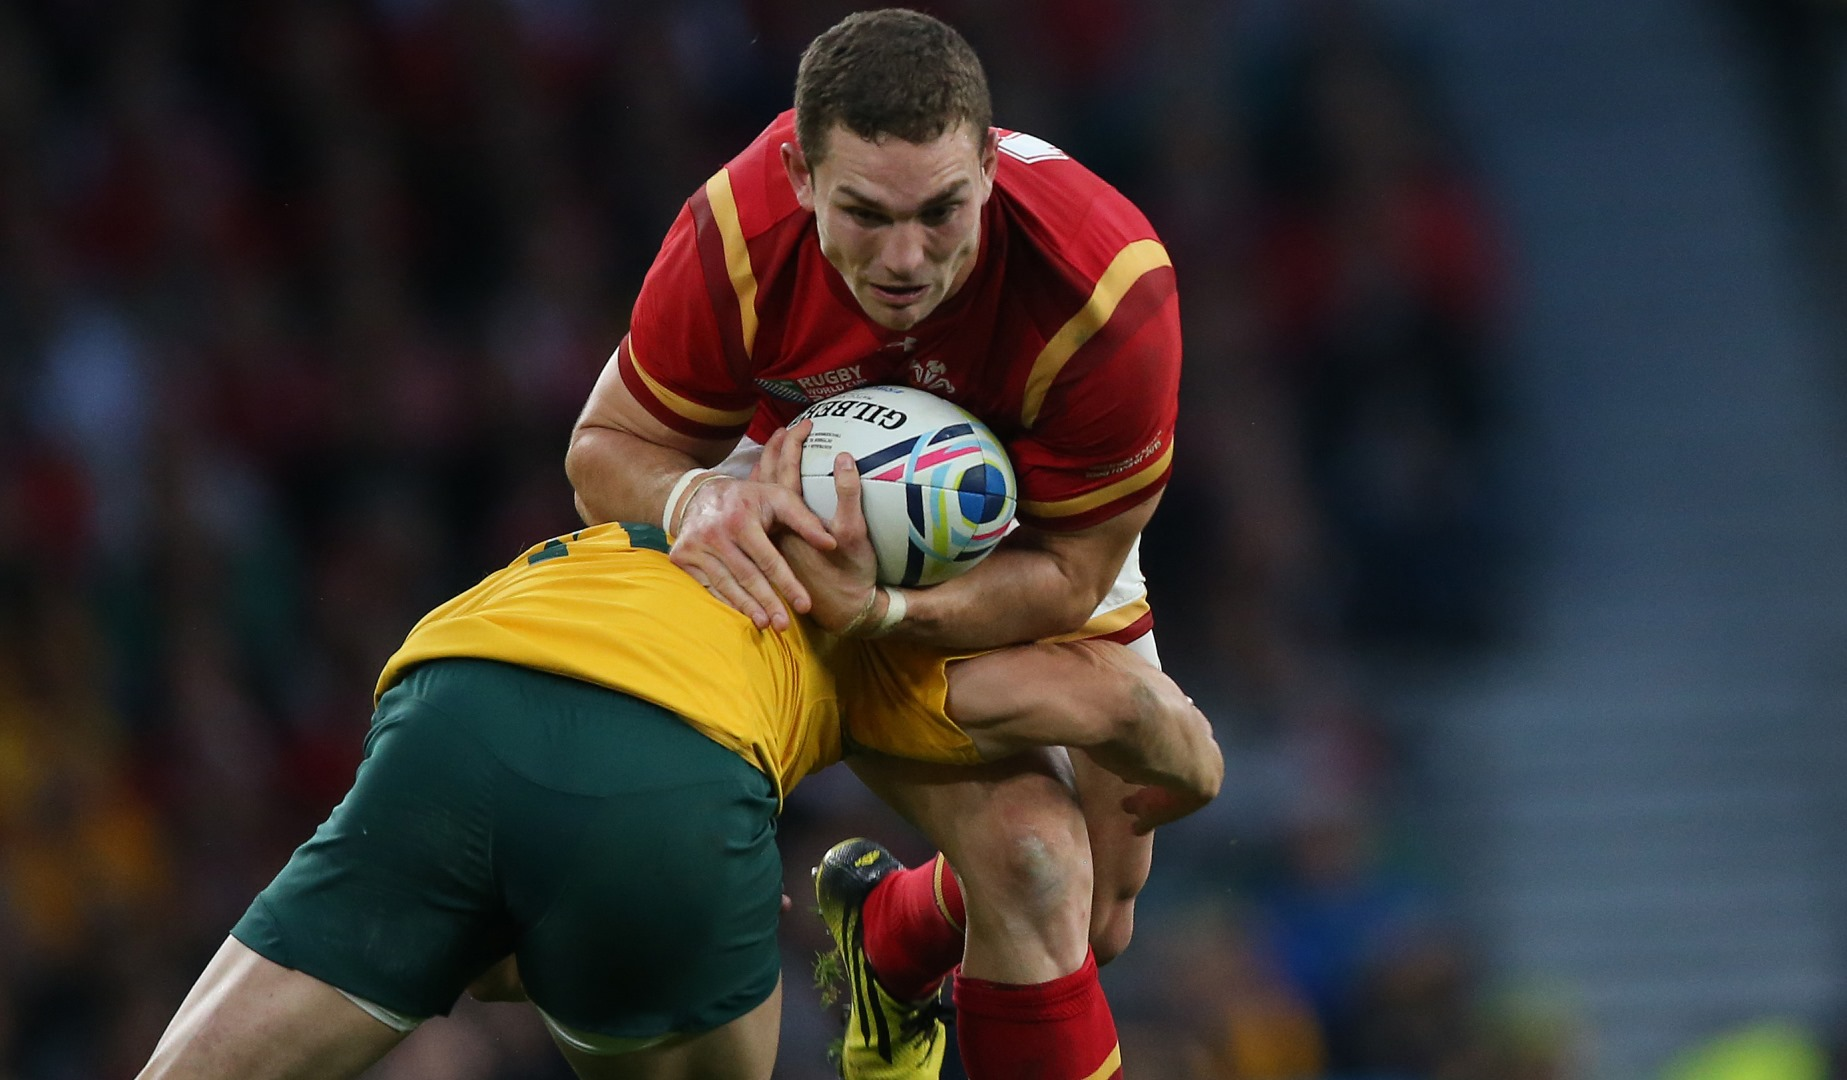 LionsWatch: Wales aim to extend home win streak